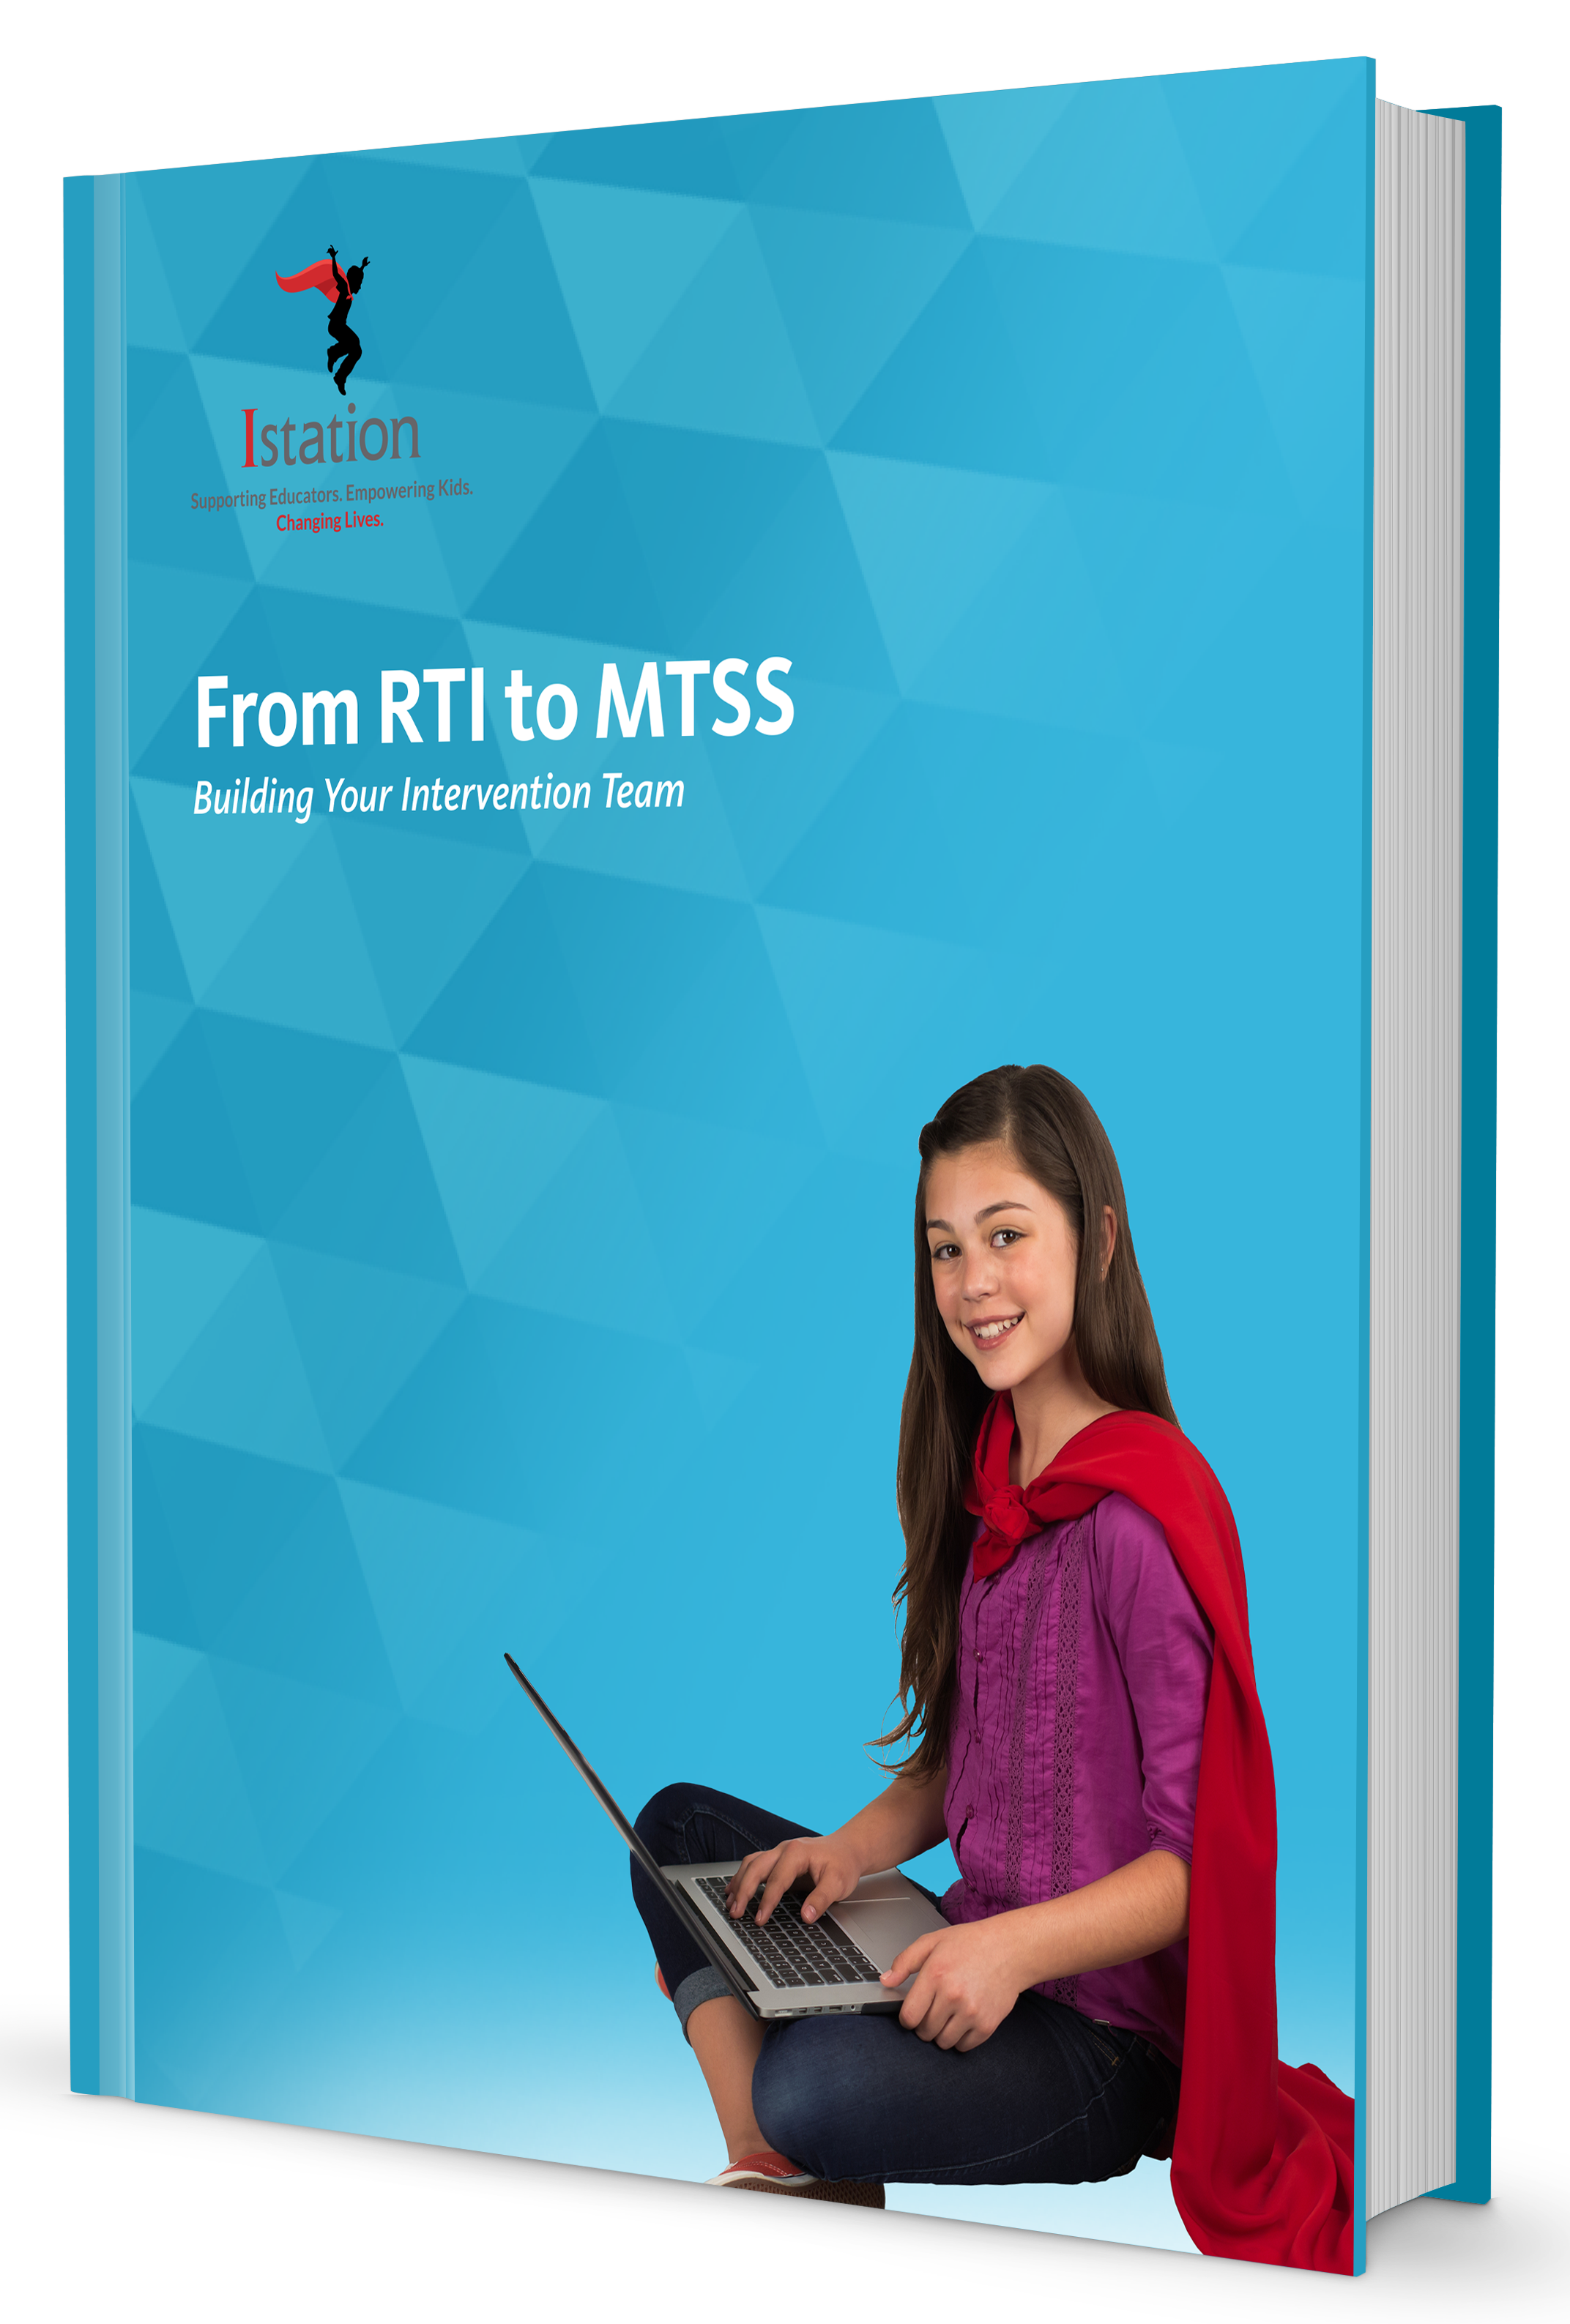 From RTI to MTSS: Building Your Intervention Team